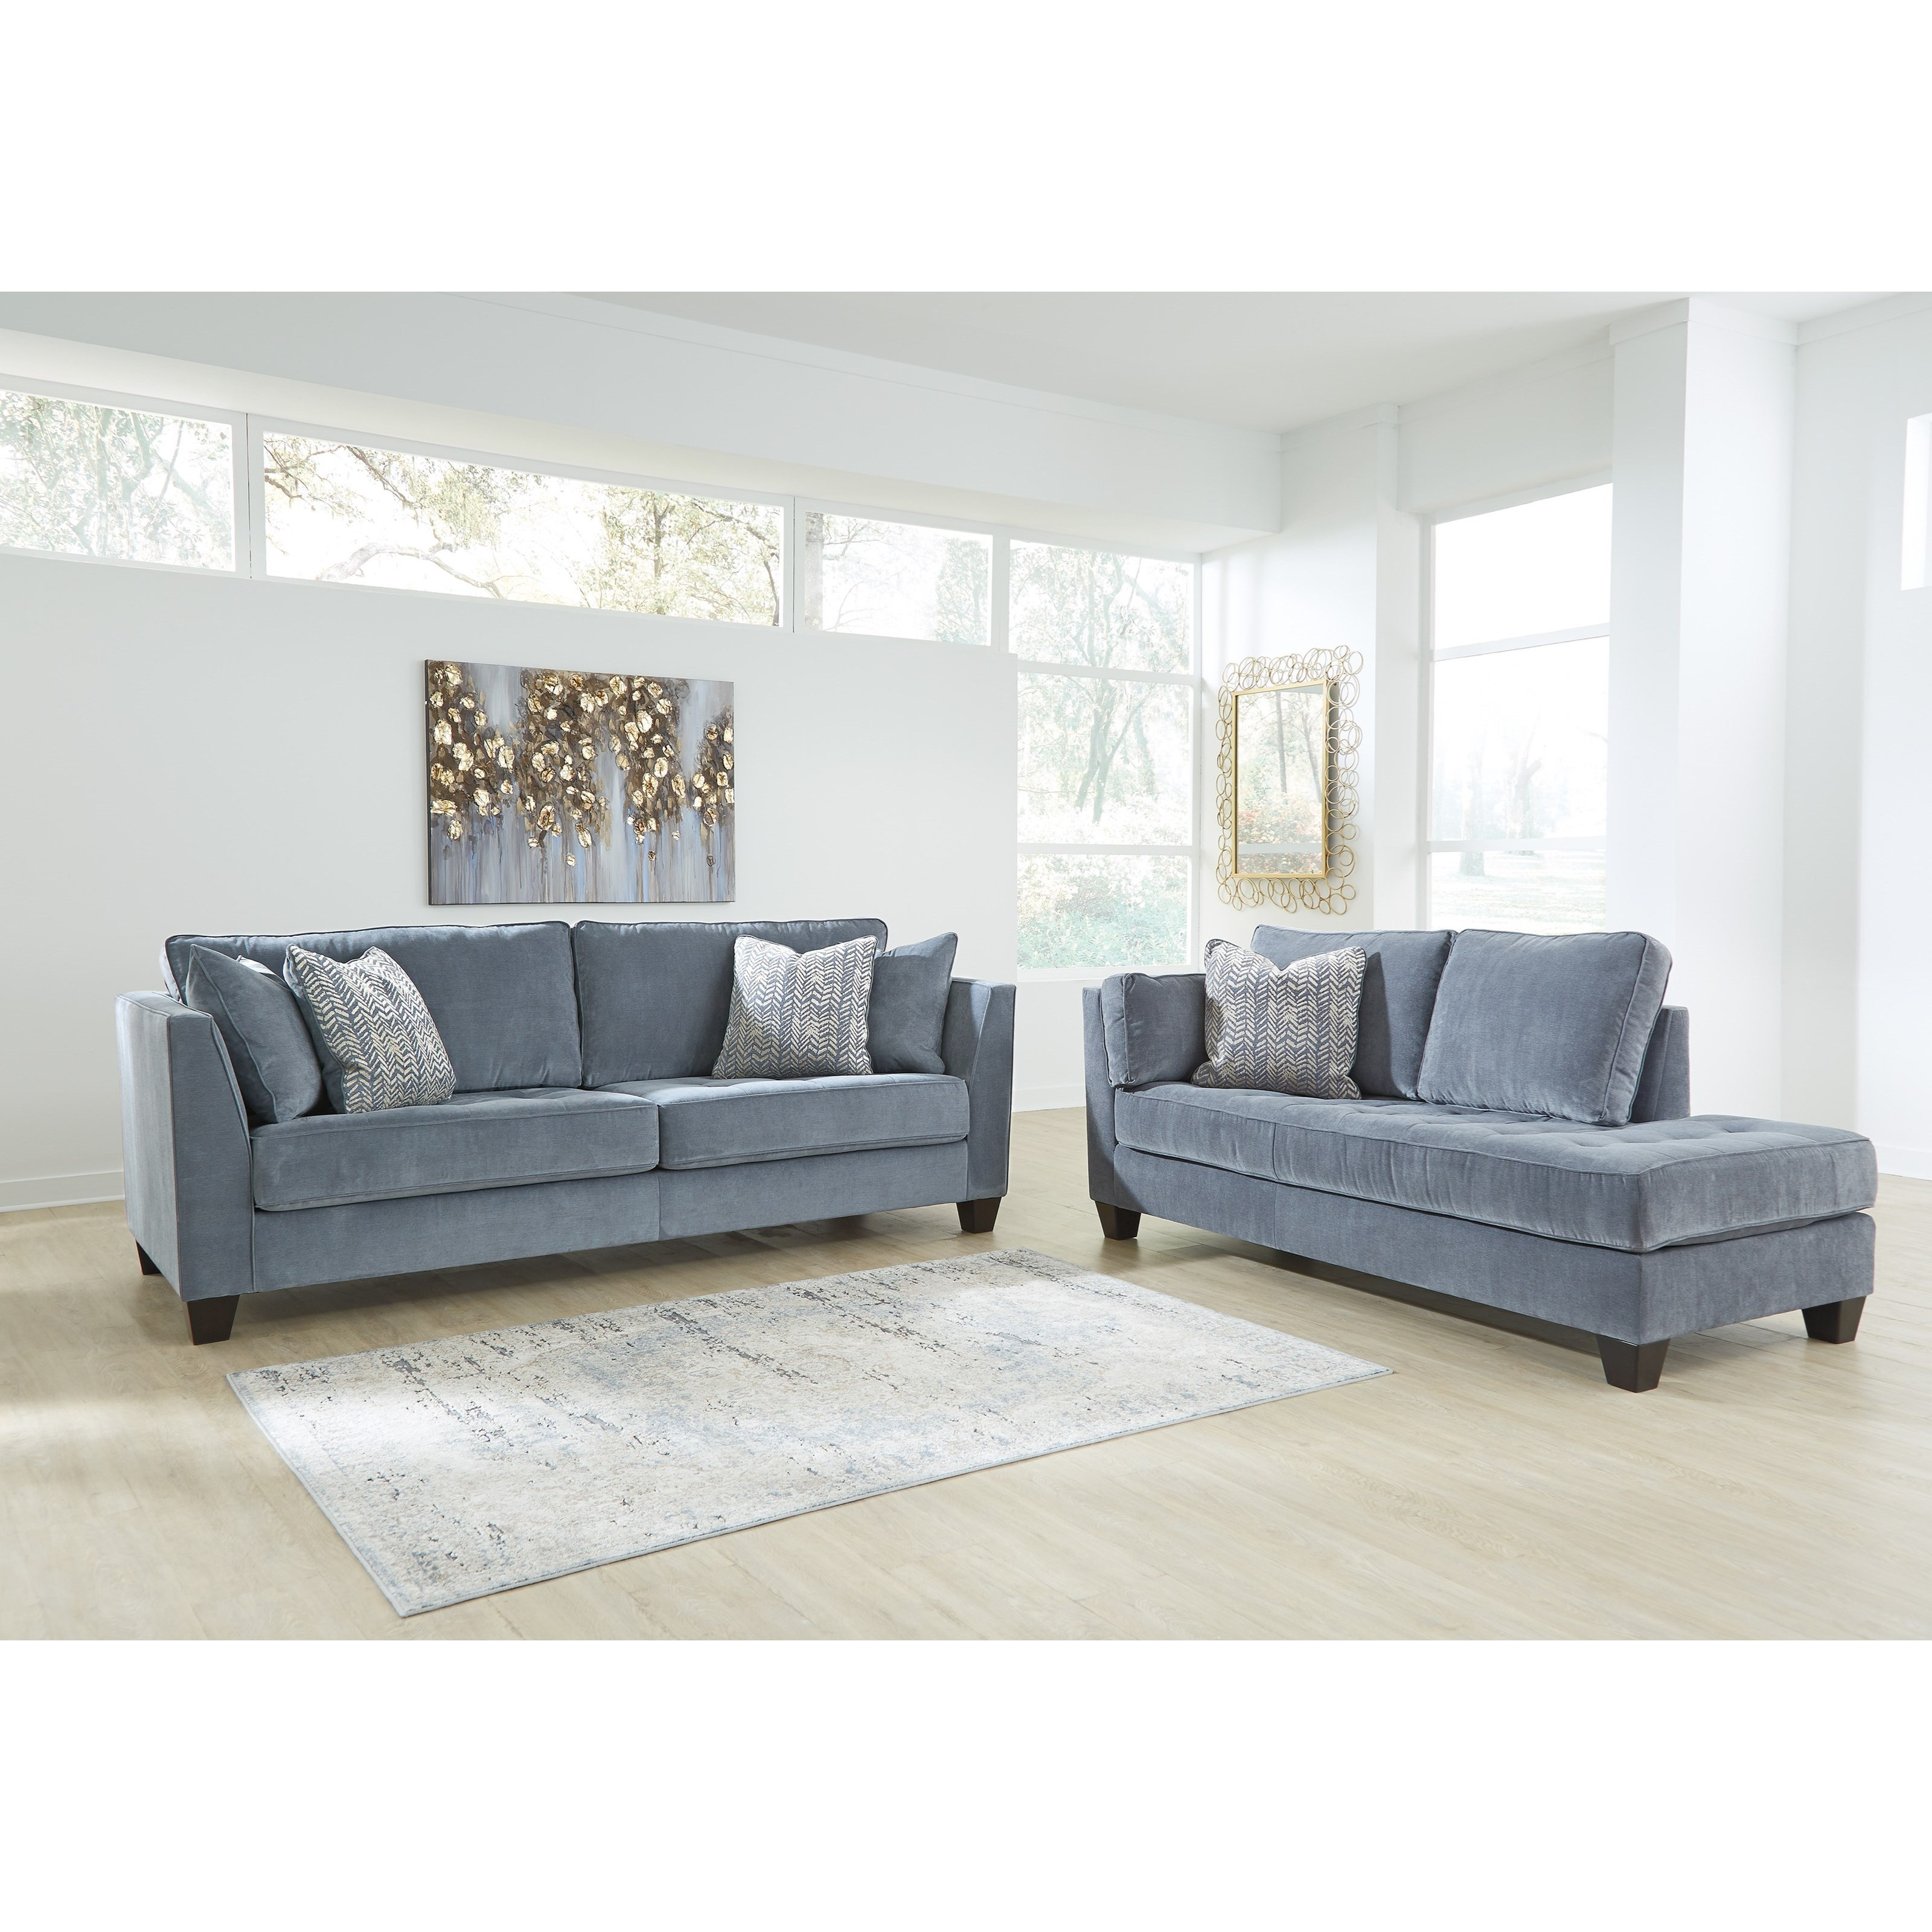 Sciolo Stationary Living Room Group by Ashley Furniture at Lucas Furniture & Mattress